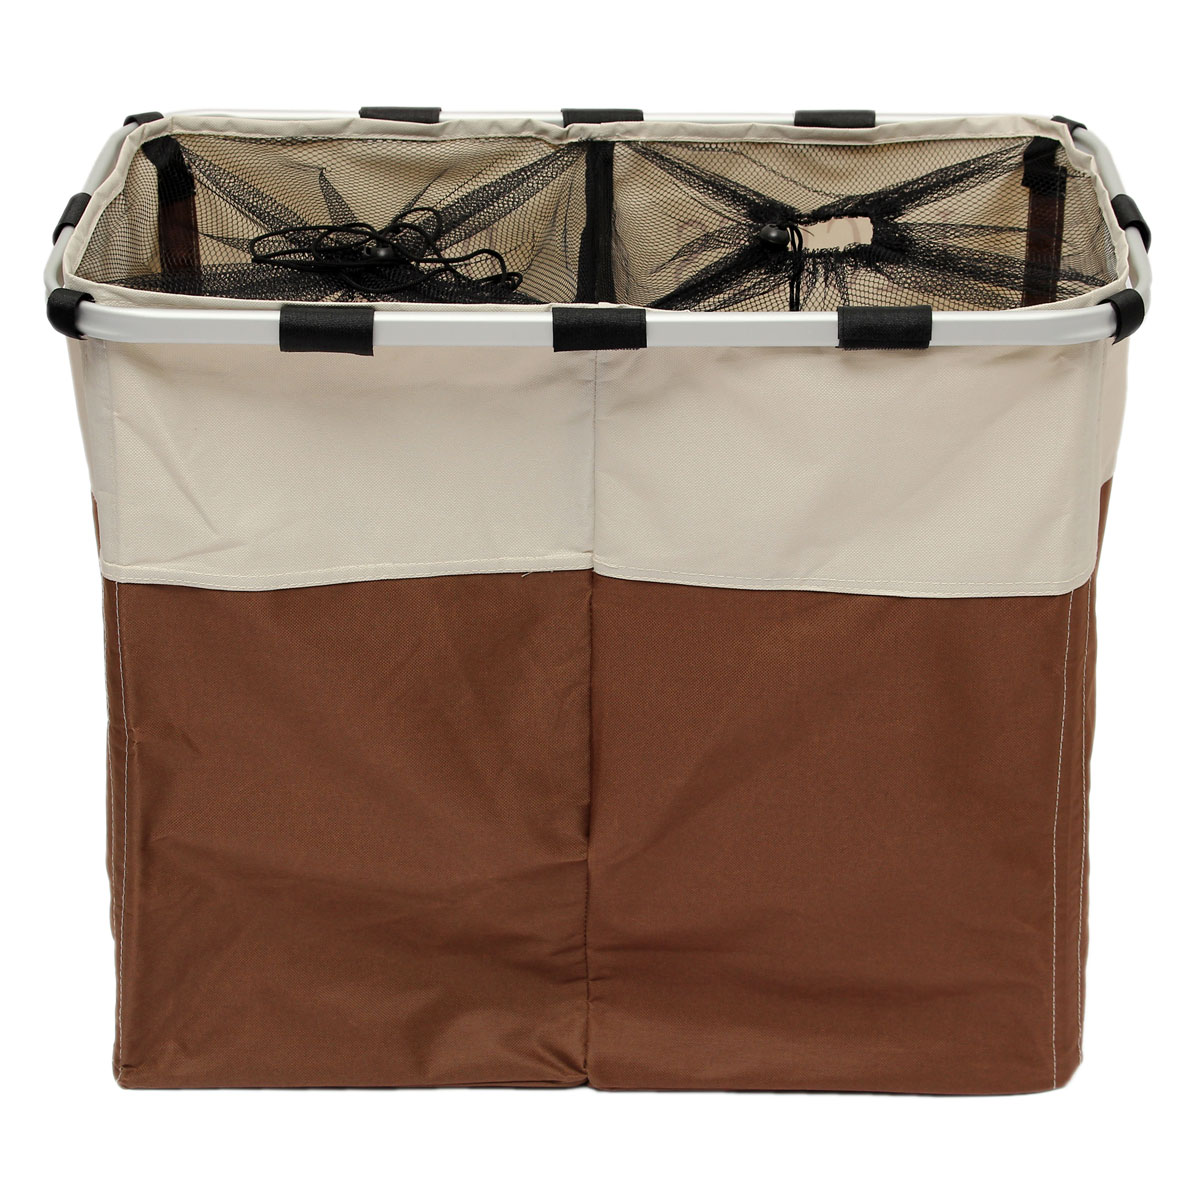 Clothes Hampers For Sale Double Folding Laundry Washing Clothes Basket Bag Bin